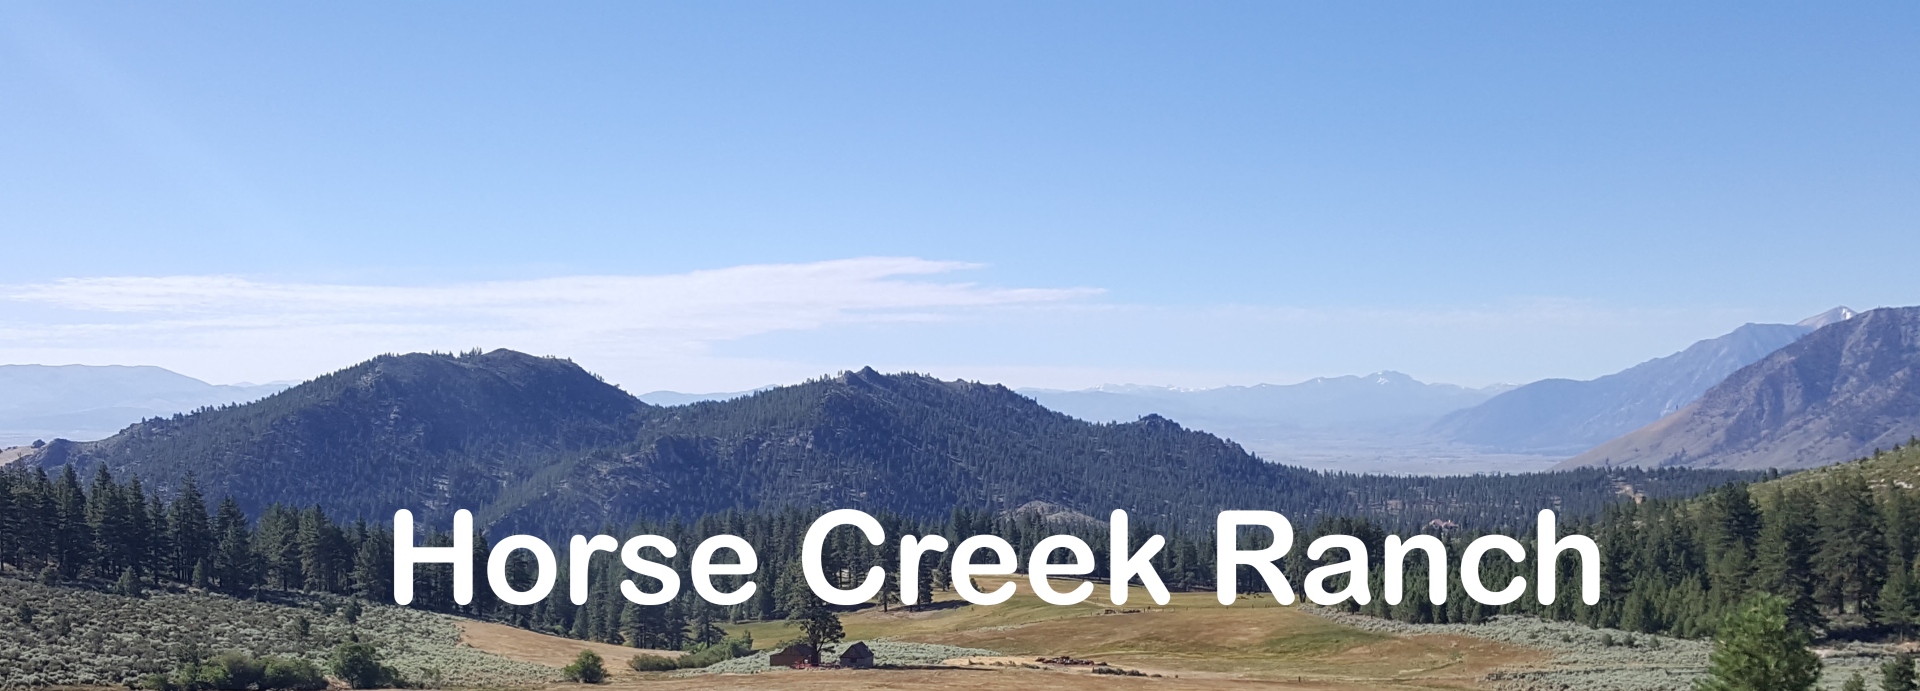 horse creek ranch